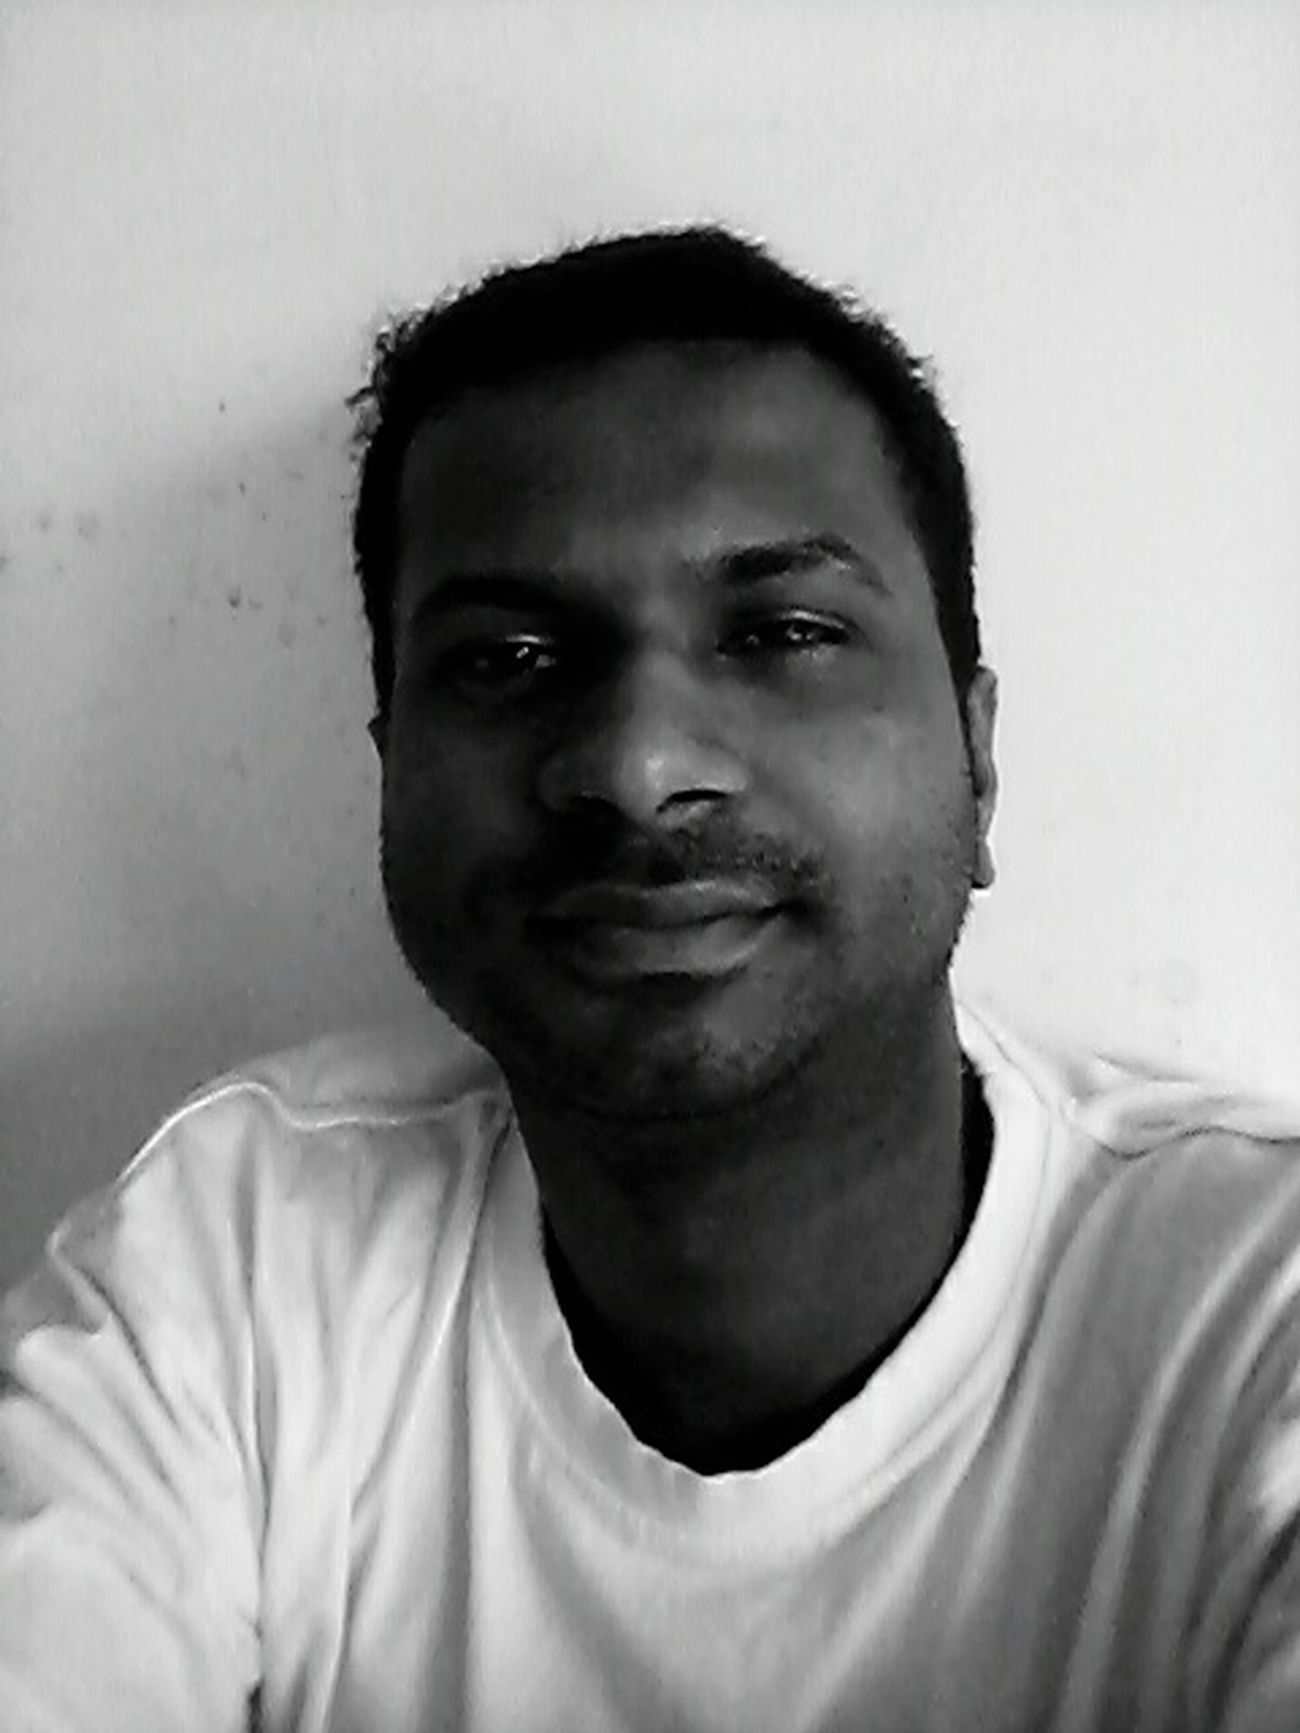 Taking Photos That's Me Hi! Hello World Goodmorning EyeEm  Goodmorningpeople OpenEdit Goodmorningselfie Blackandwhite Photography